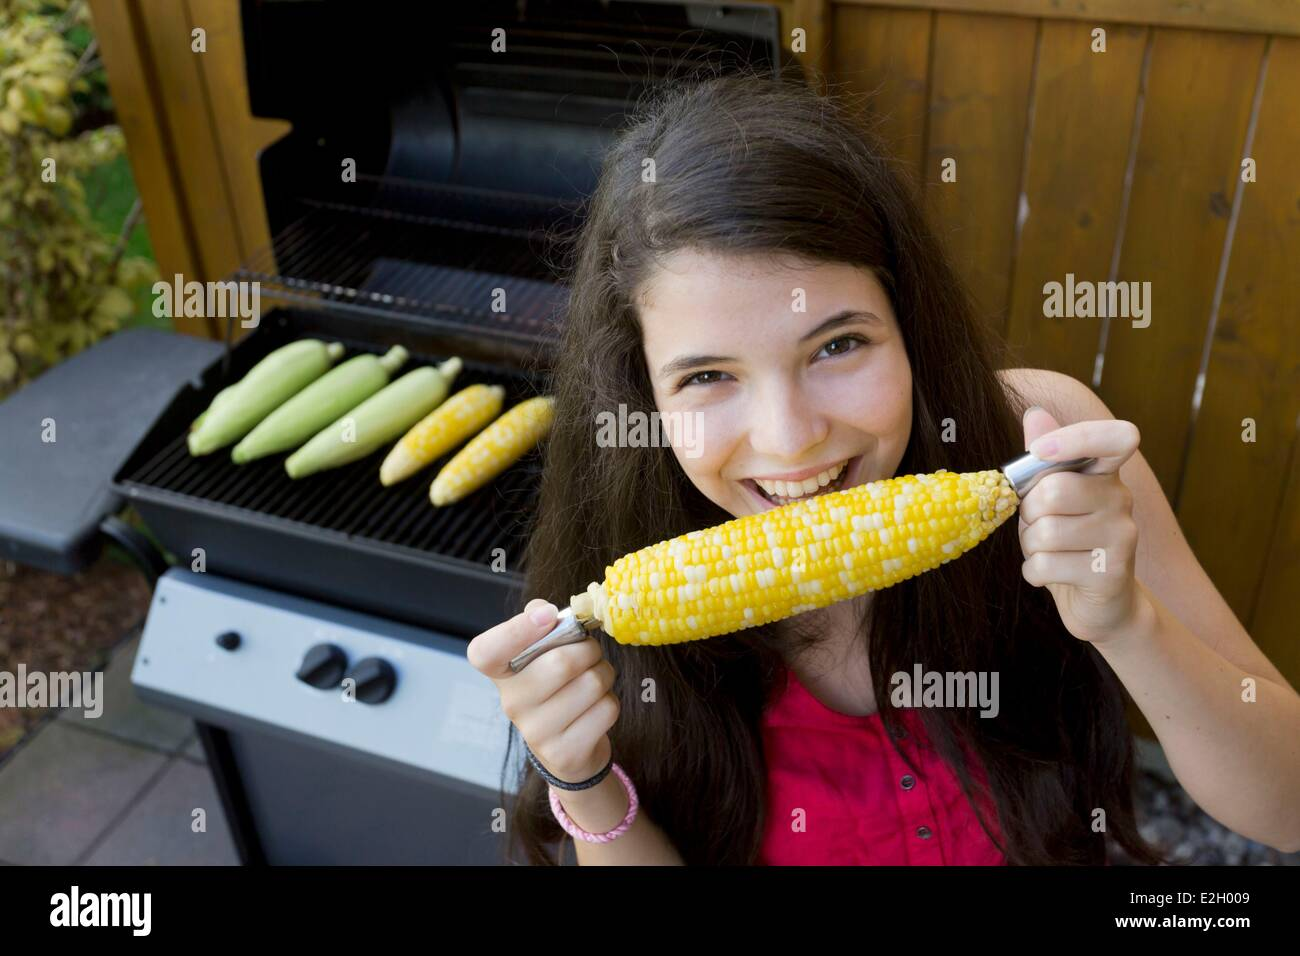 Canada Quebec province Montreal tasting sweet corn cooked on a barbecue Epluchette tradition - Stock Image